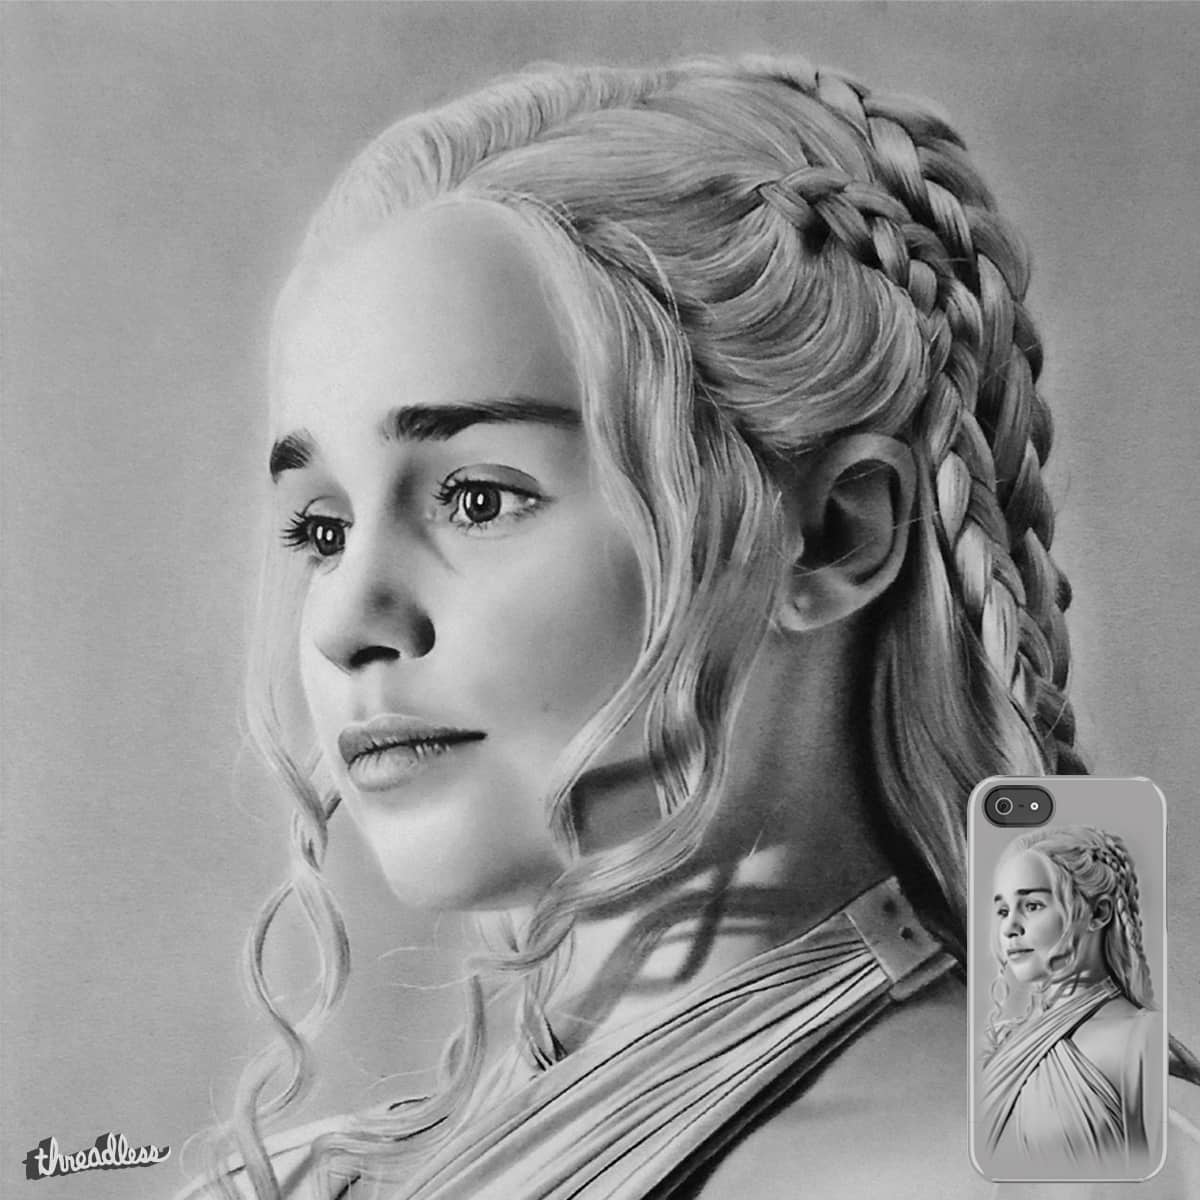 drawing game of thrones Score Pencil Drawing Of Emilia Clarke From Game Of Thrones